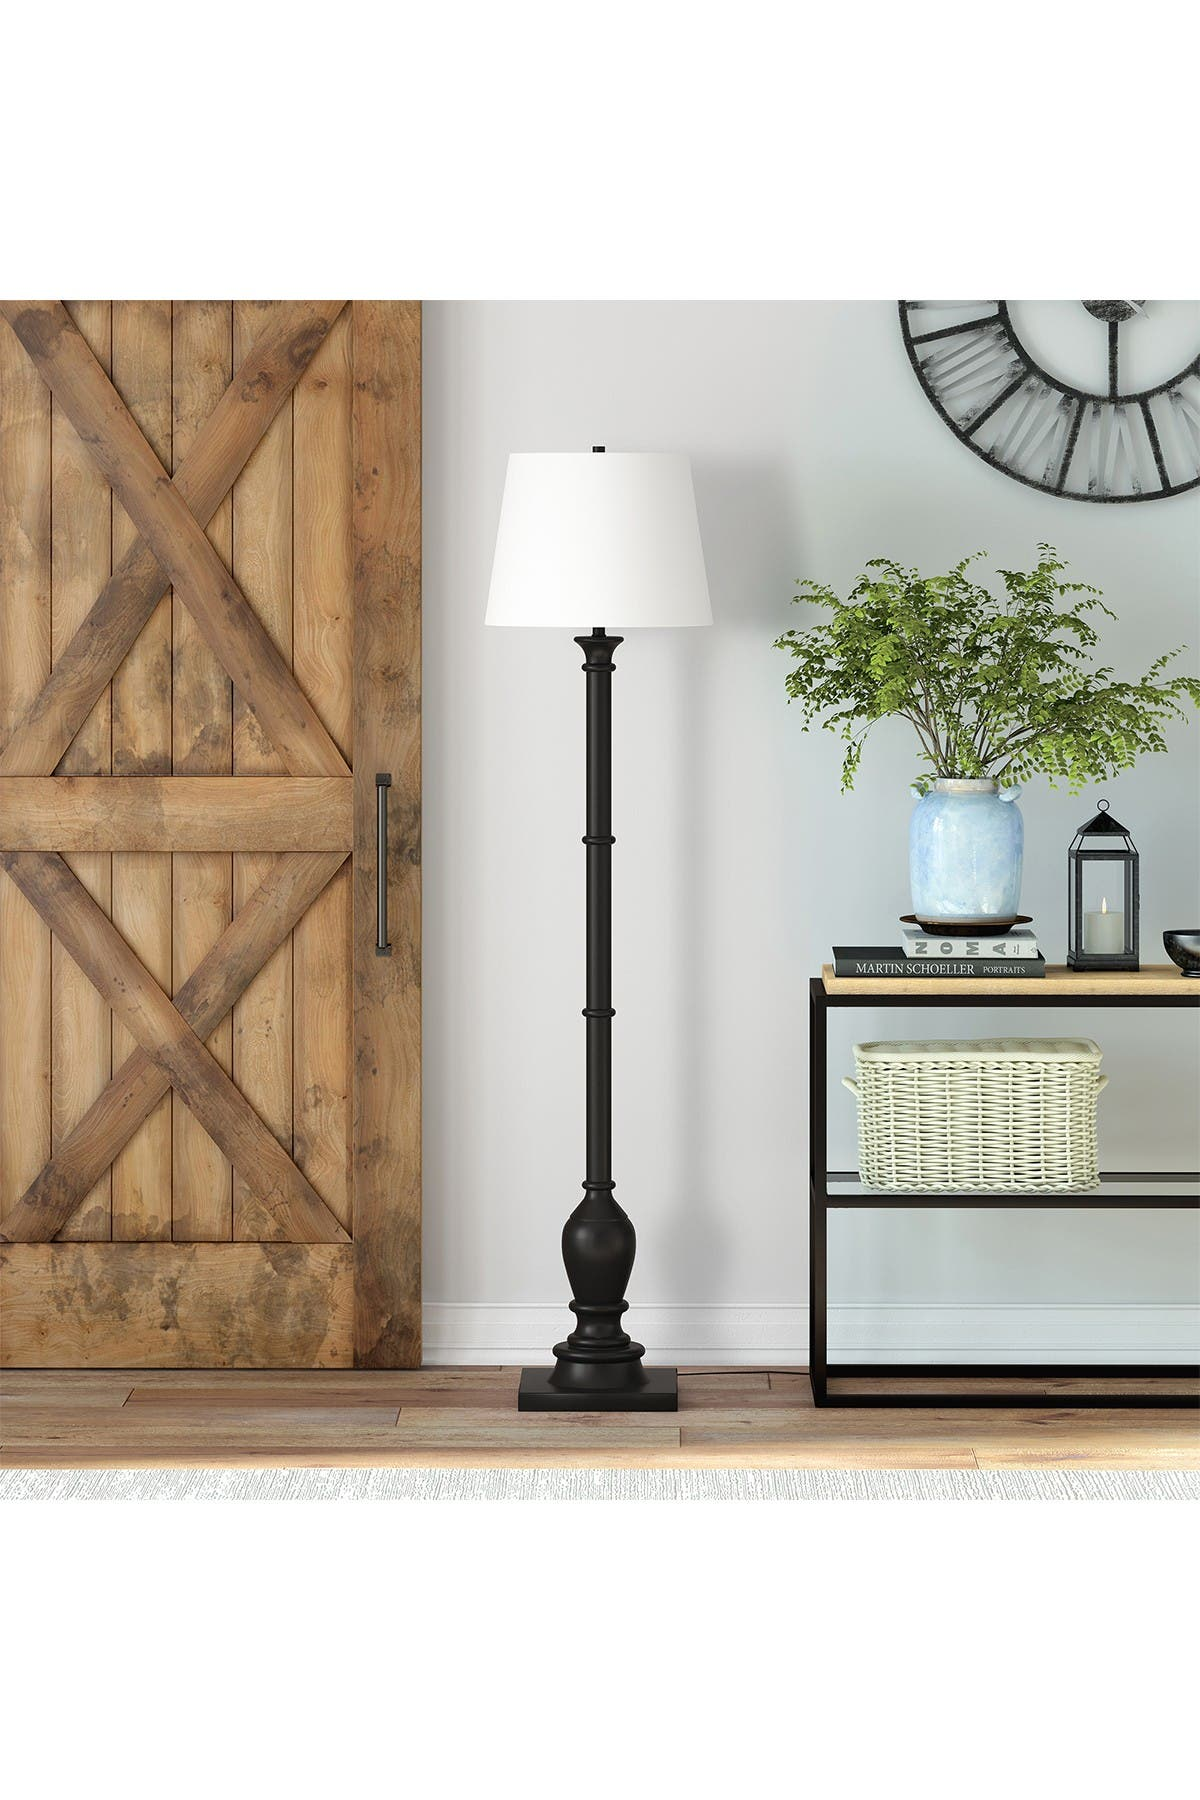 Image of Addison and Lane Minnie Farmhouse Empire Shade Blackened Bronze Lamp